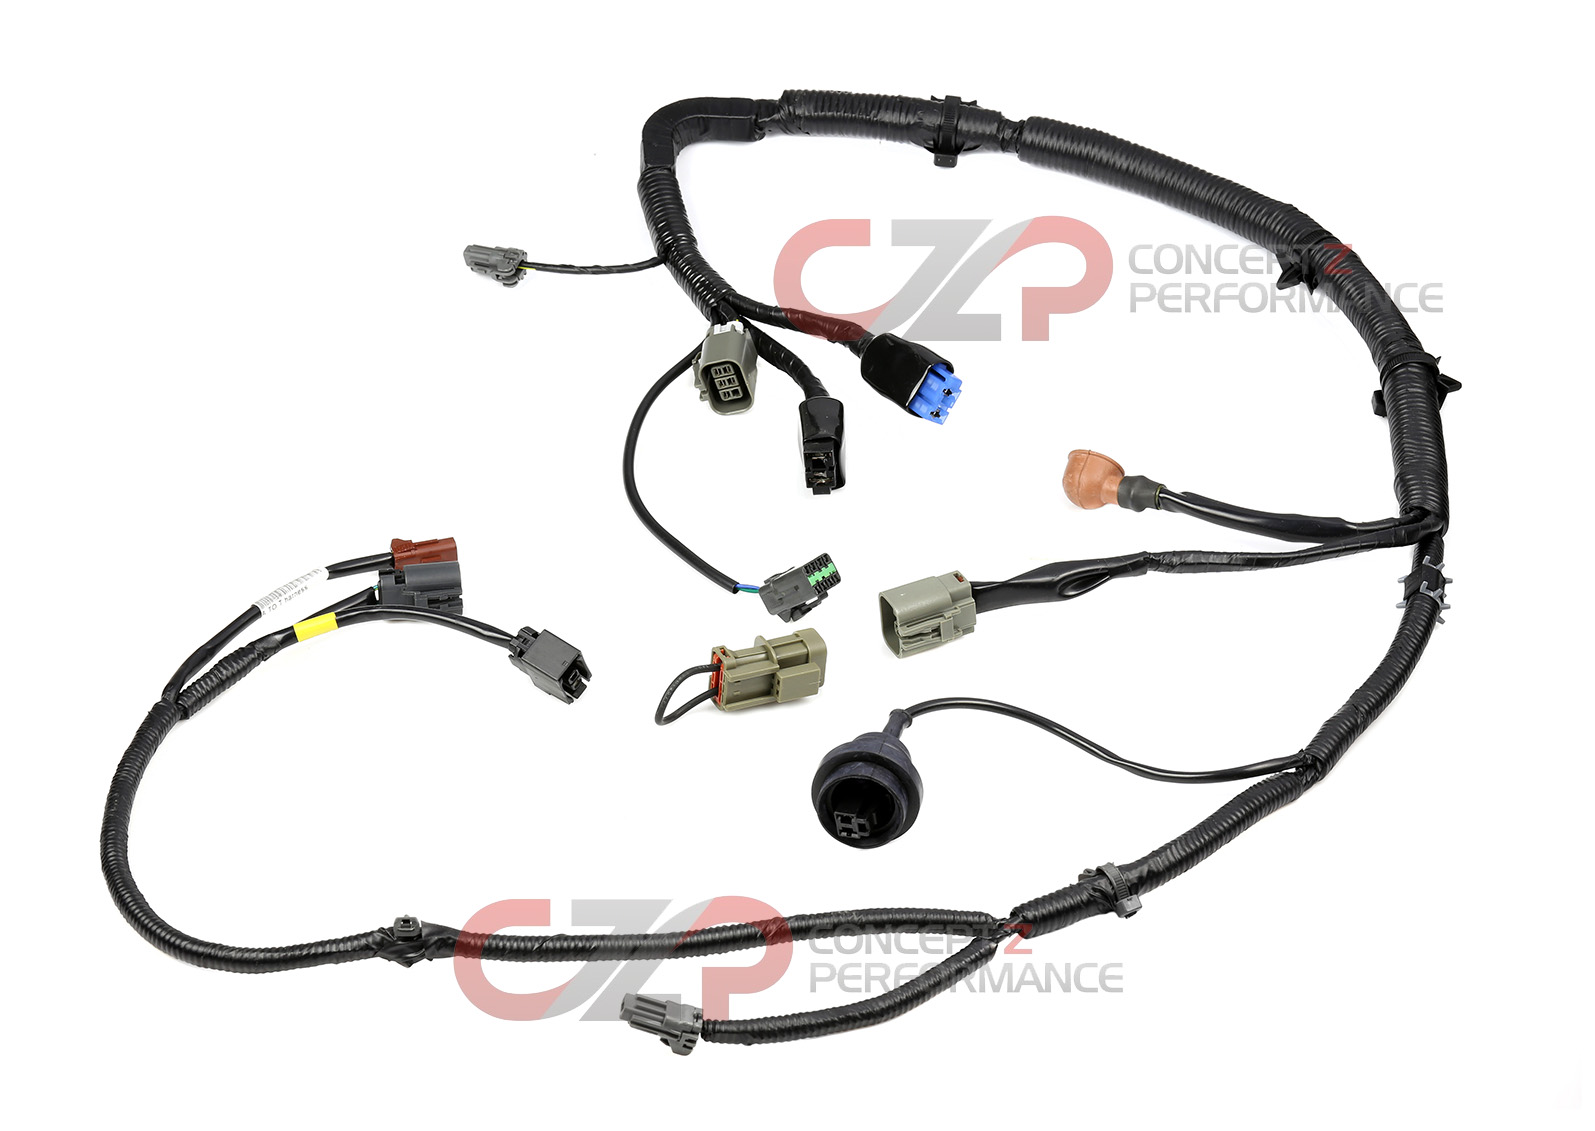 hight resolution of wiring specialties alternator to transmission harness automatic at rh conceptzperformance com nissan 300zx alternator wiring diagram